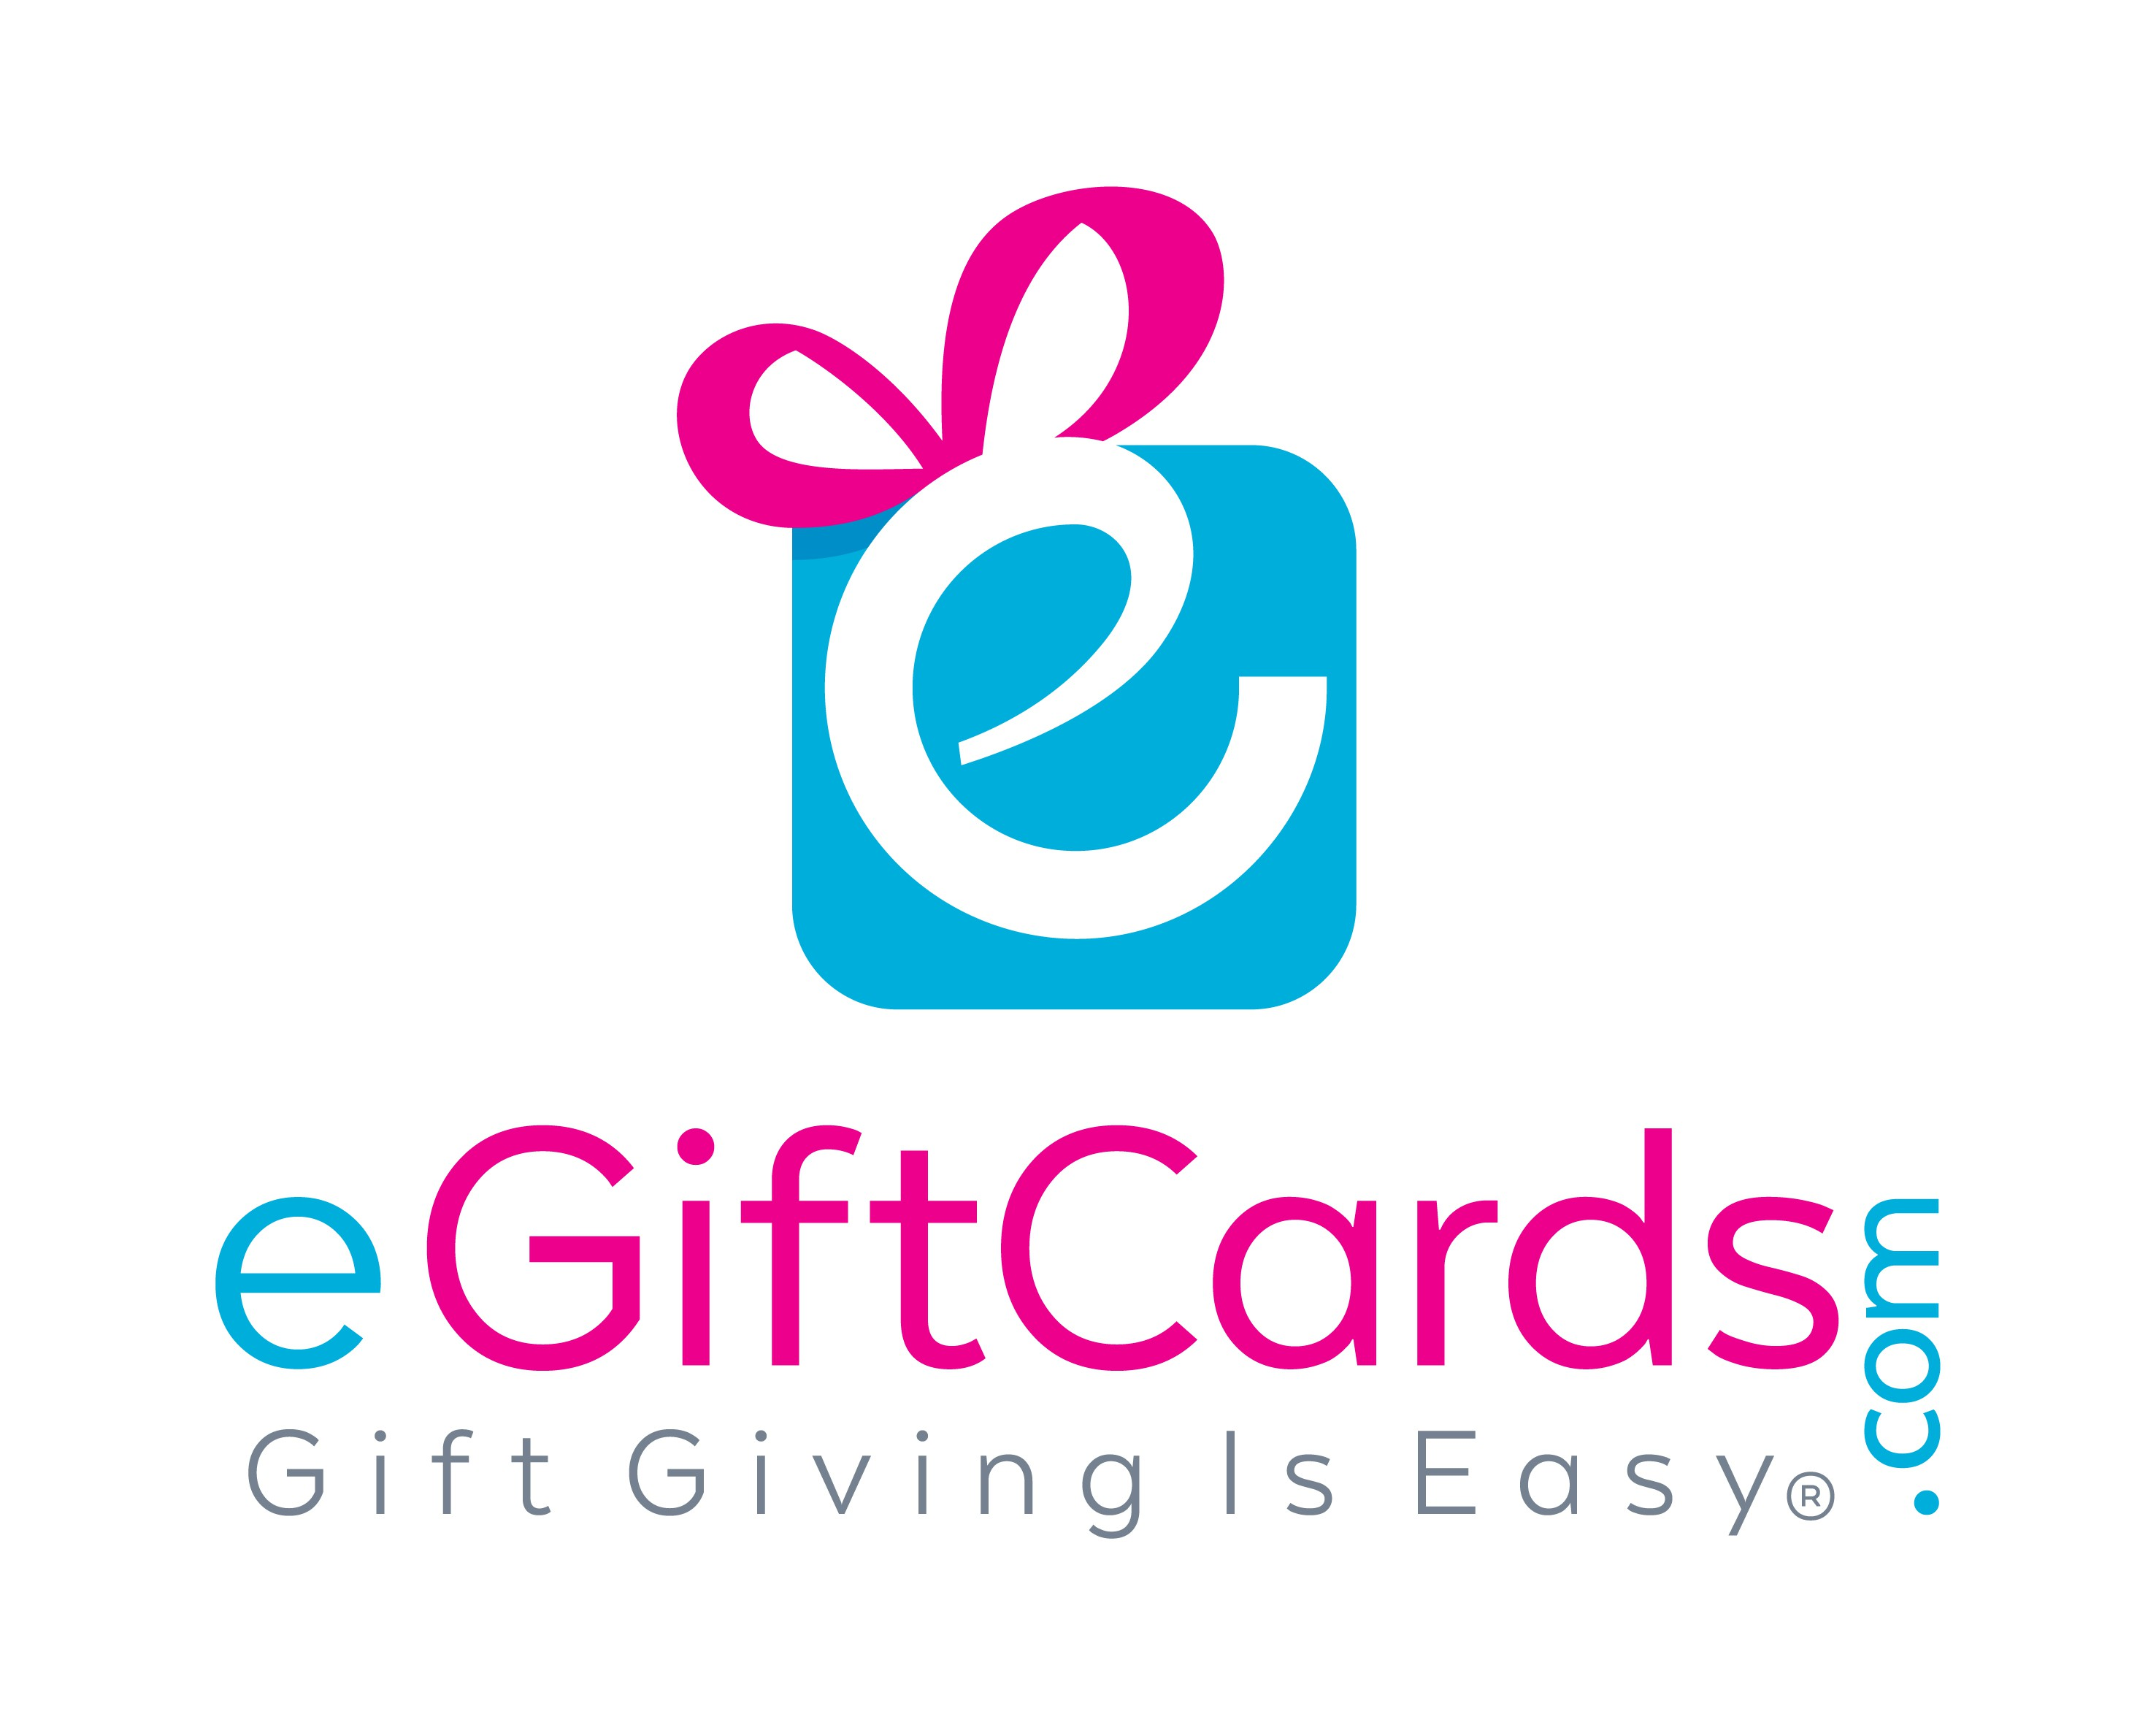 We are  starting an eGiftCard company.